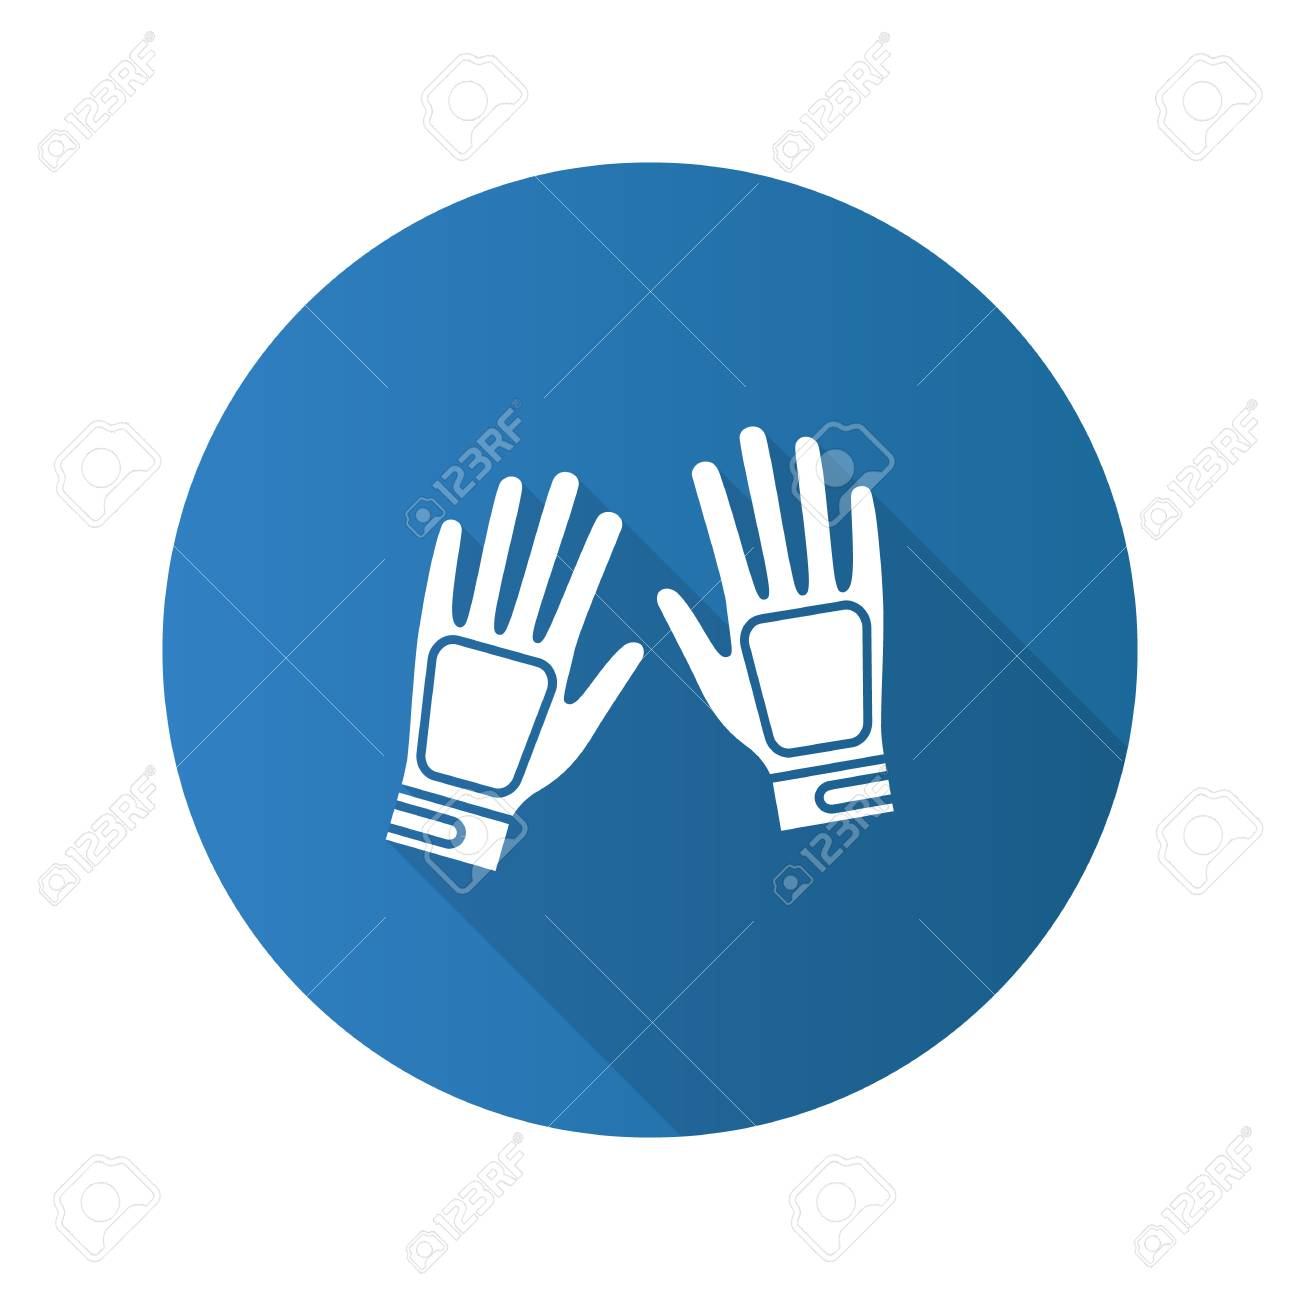 gloves flat design long shadow glyph icon vector silhouette